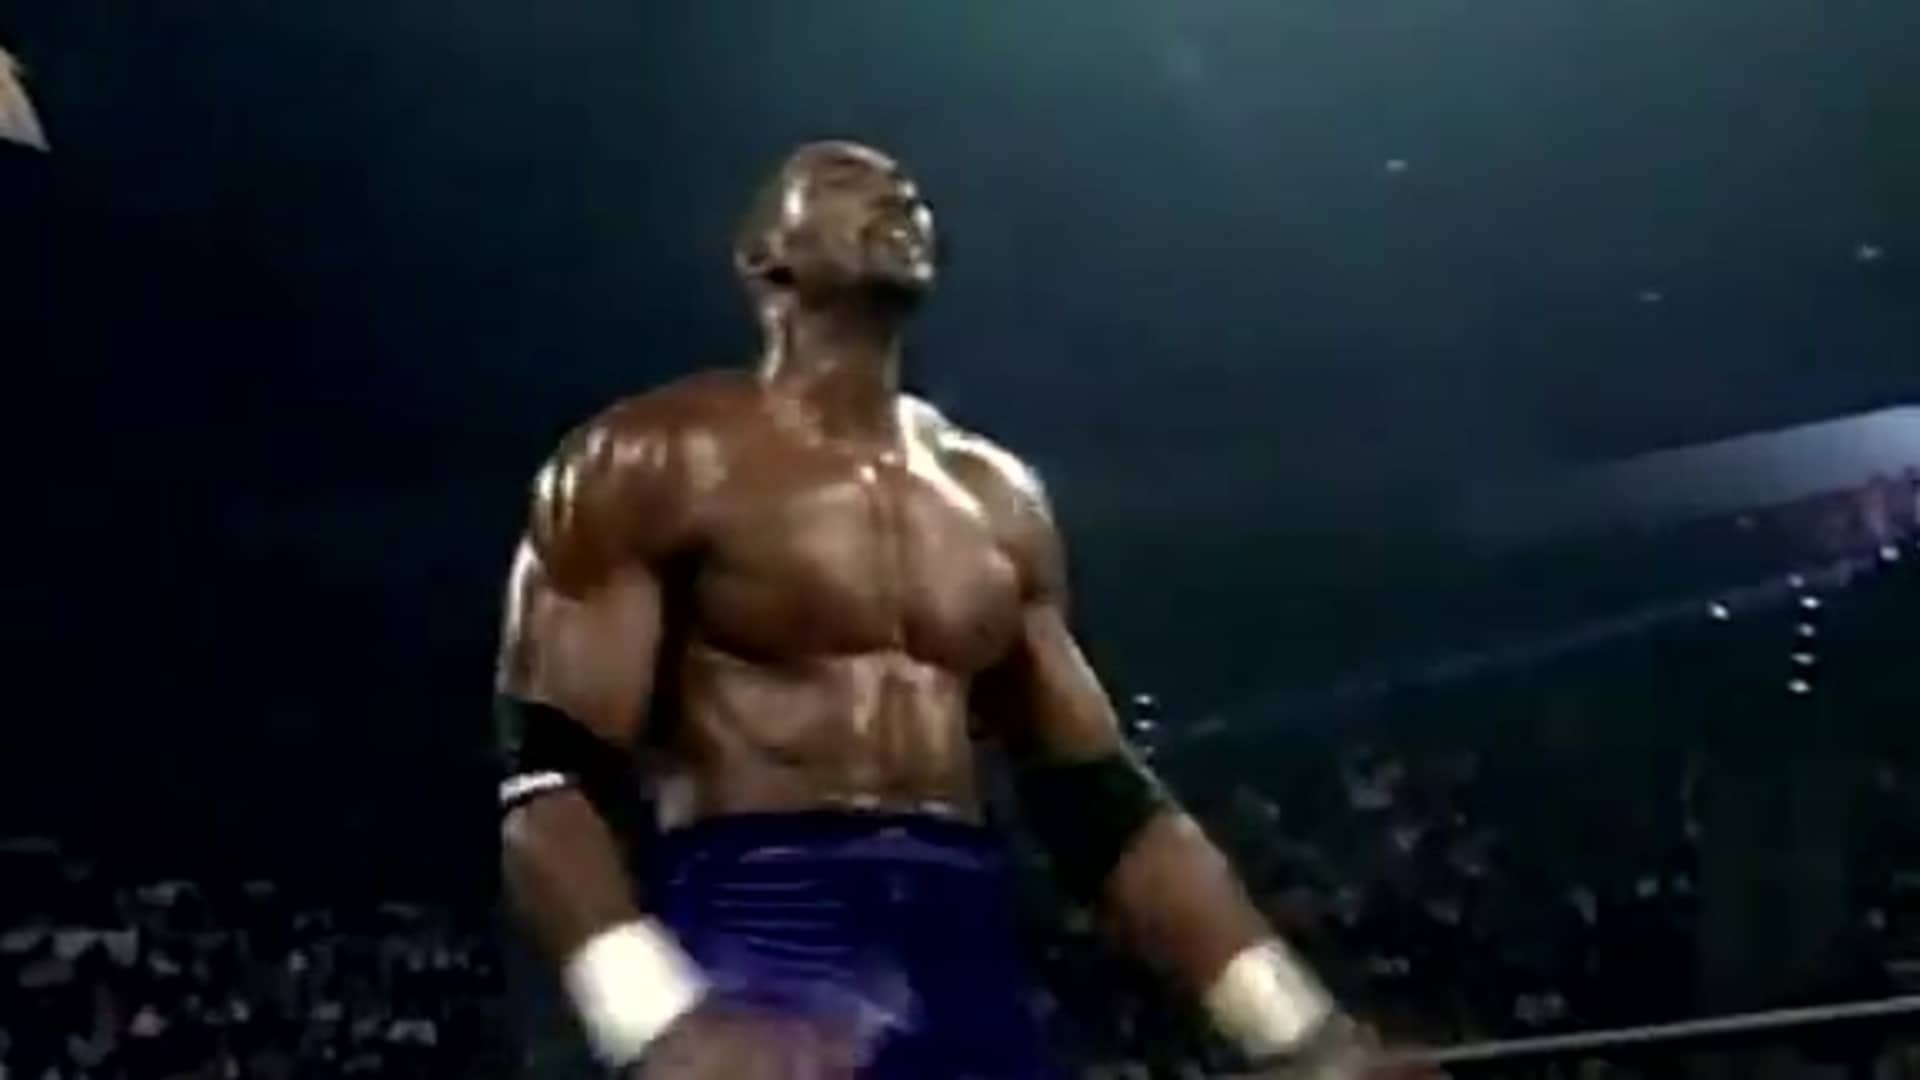 Karl Malone steps in the wrestling ring in 1998 - #TBT